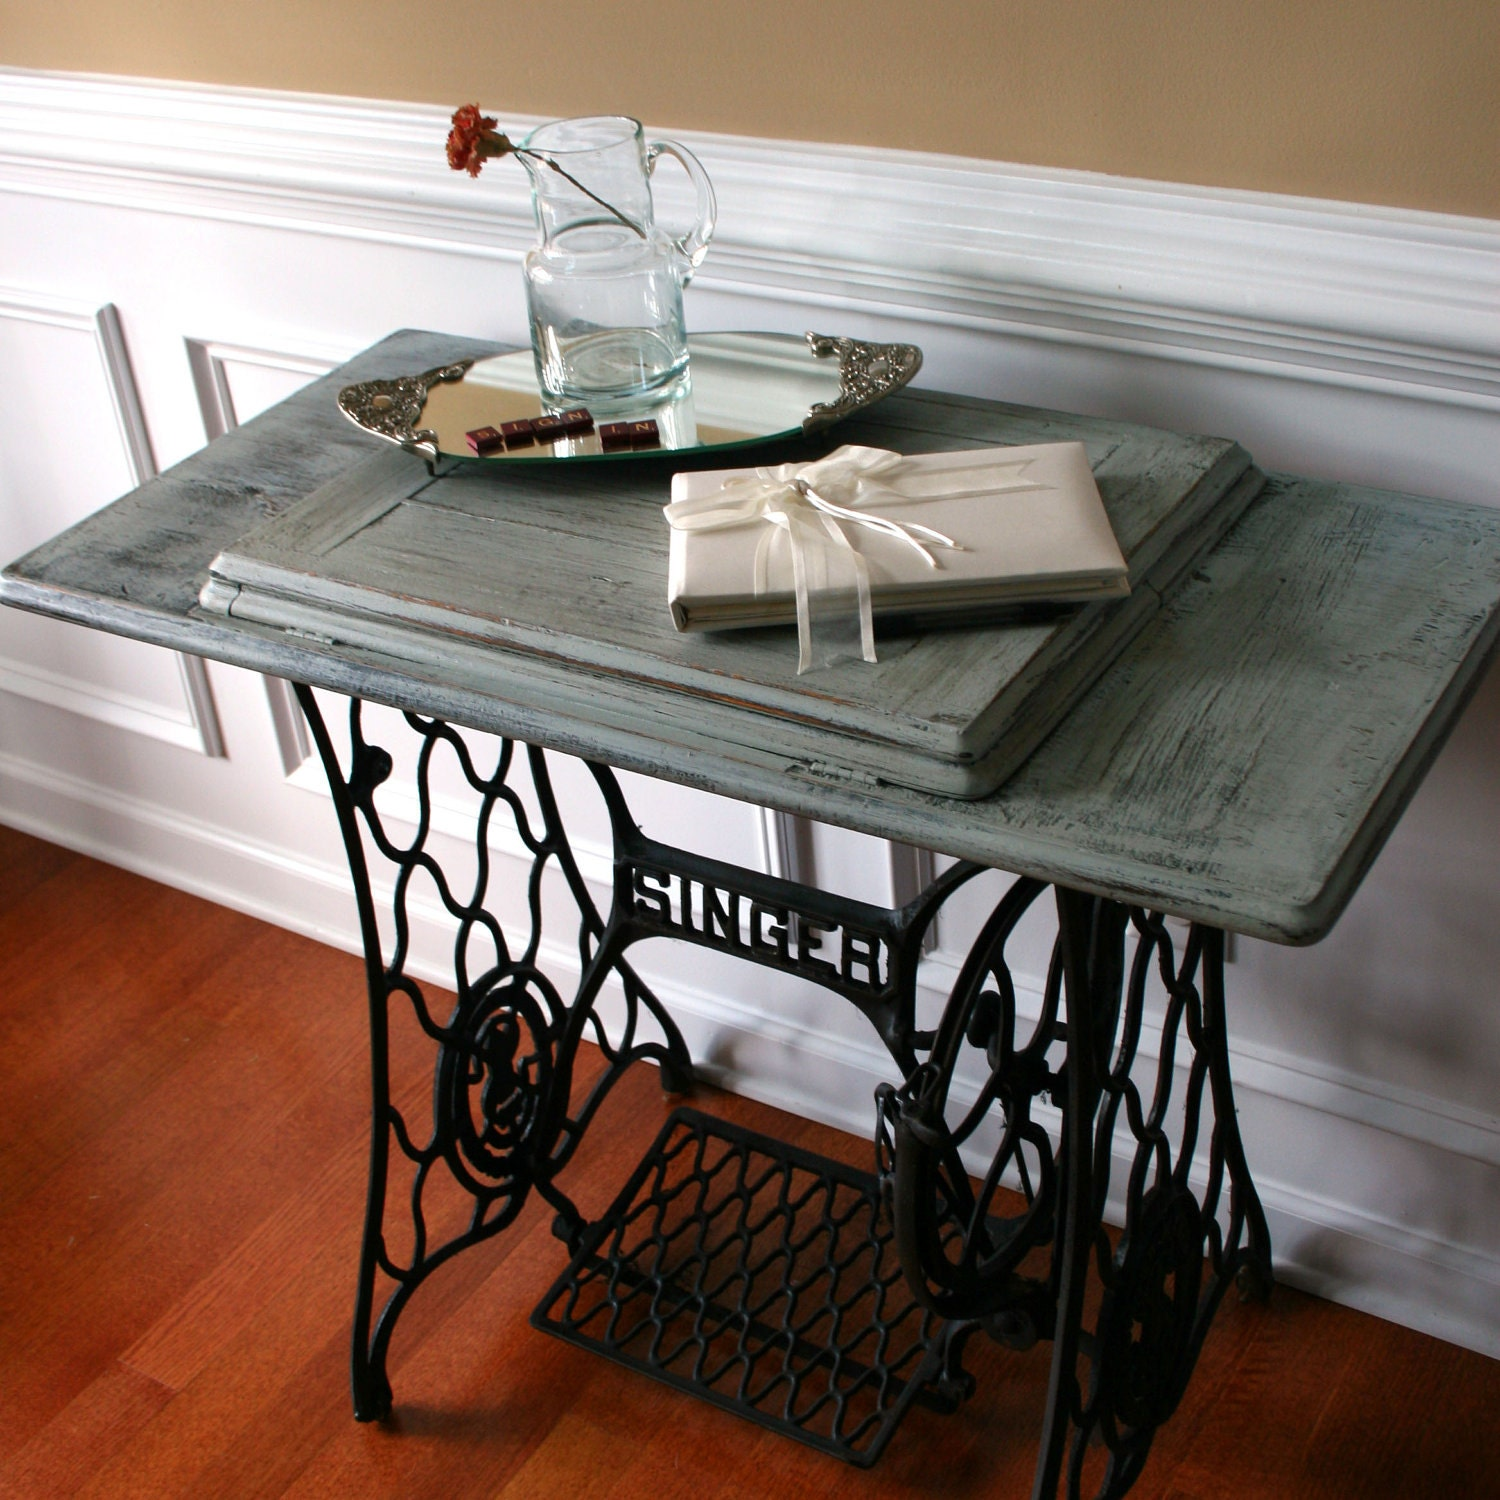 Wedding Guest Book Table. Grey Blue Entryway Table School Desk. Singer Treadle Sewing Machine Table. Country. Farm House Rustic. Industrial.